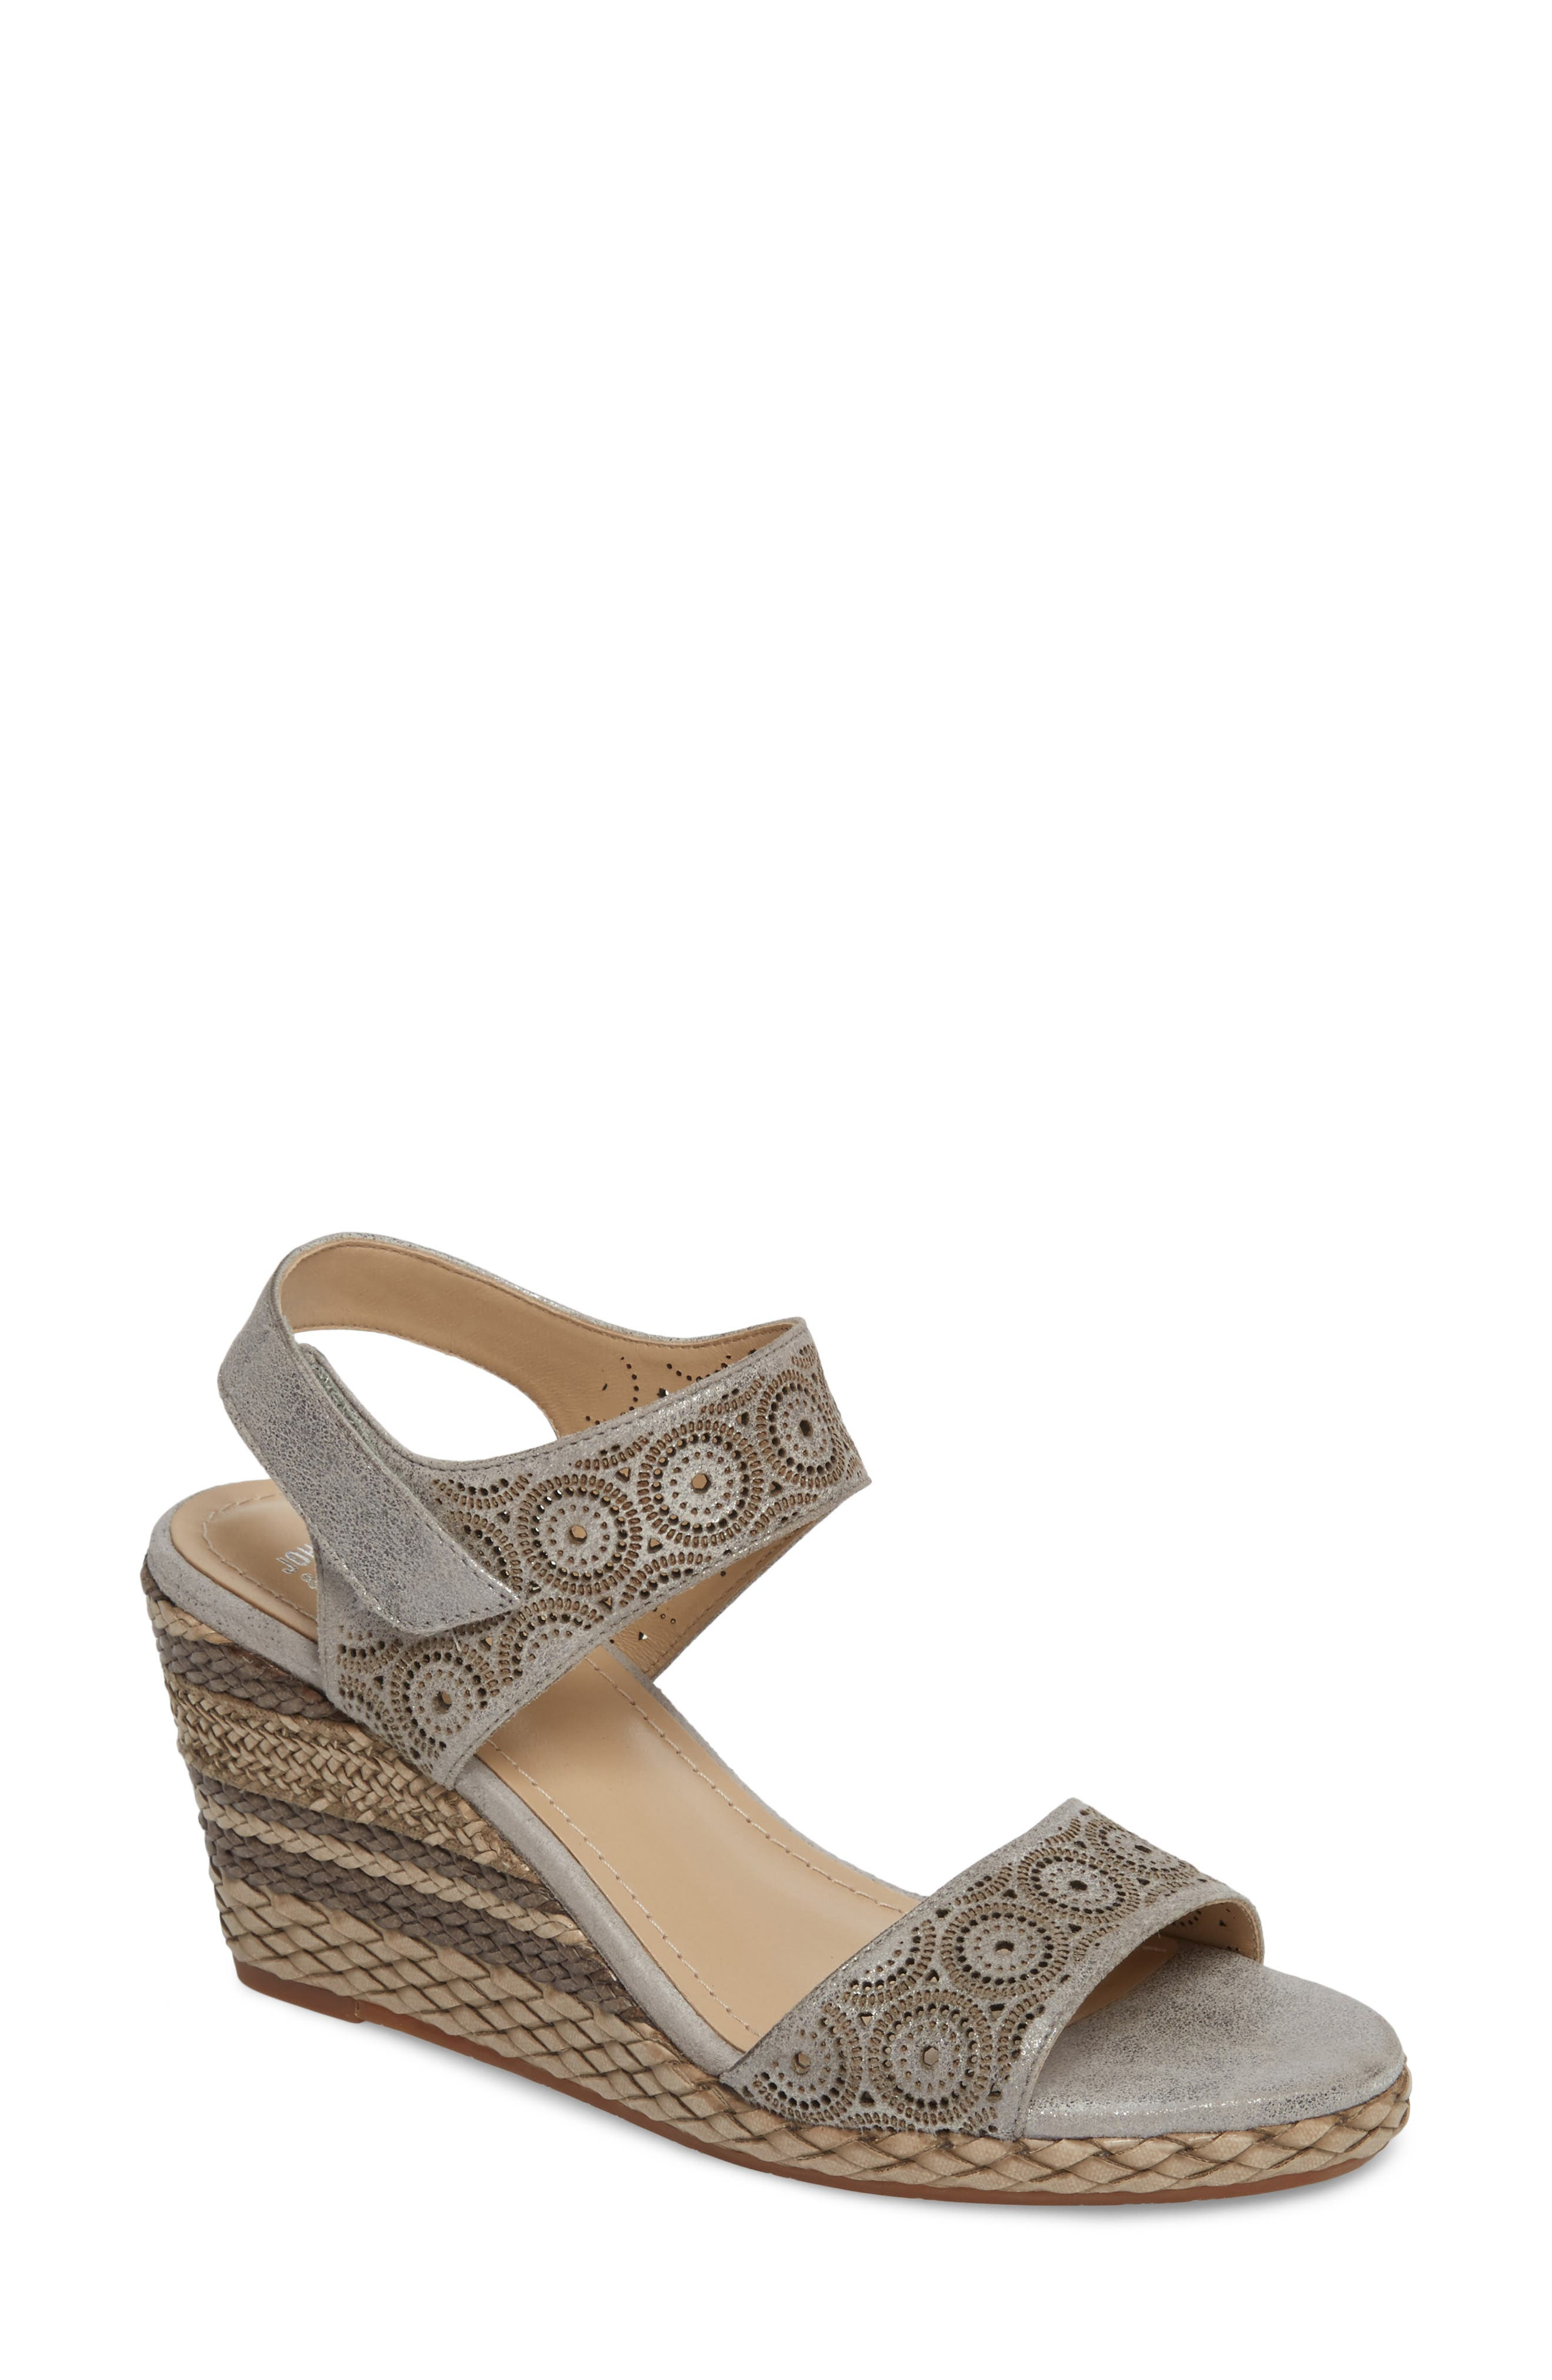 Georgiana Wedge Sandal,                             Main thumbnail 1, color,                             Pewter Leather